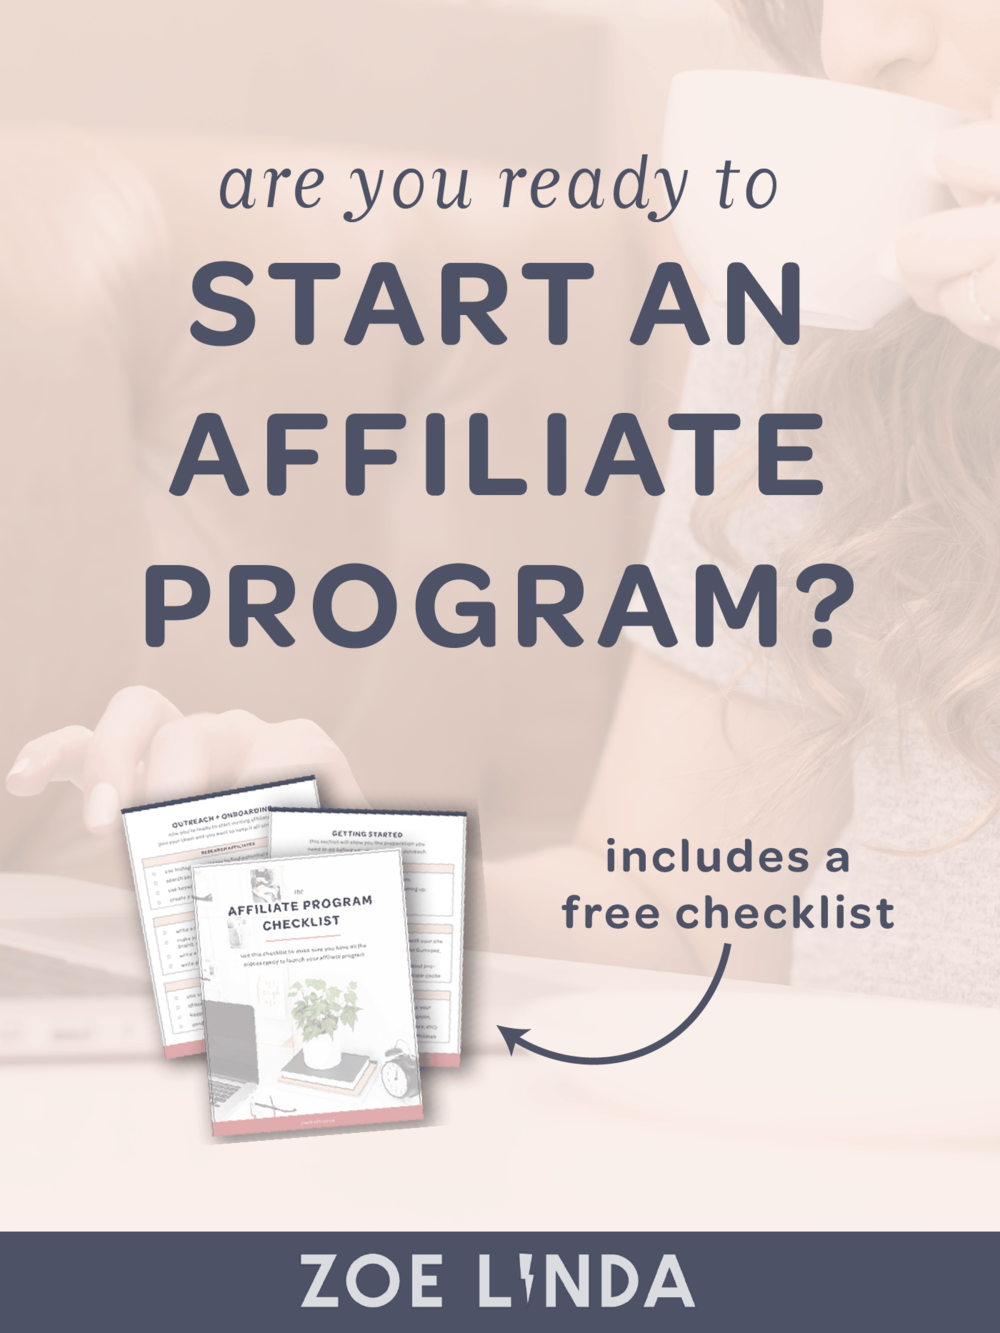 Are You Ready To Start An Affiliate Program? | If you're a digital product seller or online course creator, you could be thinking about starting your own affiliate program. But how do you know you're ready? In this blog post, I'll walk you through how to tell if you're ready to increase your passive income and scale your business through an affiliate program. Click through to read more and grab your free checklist!